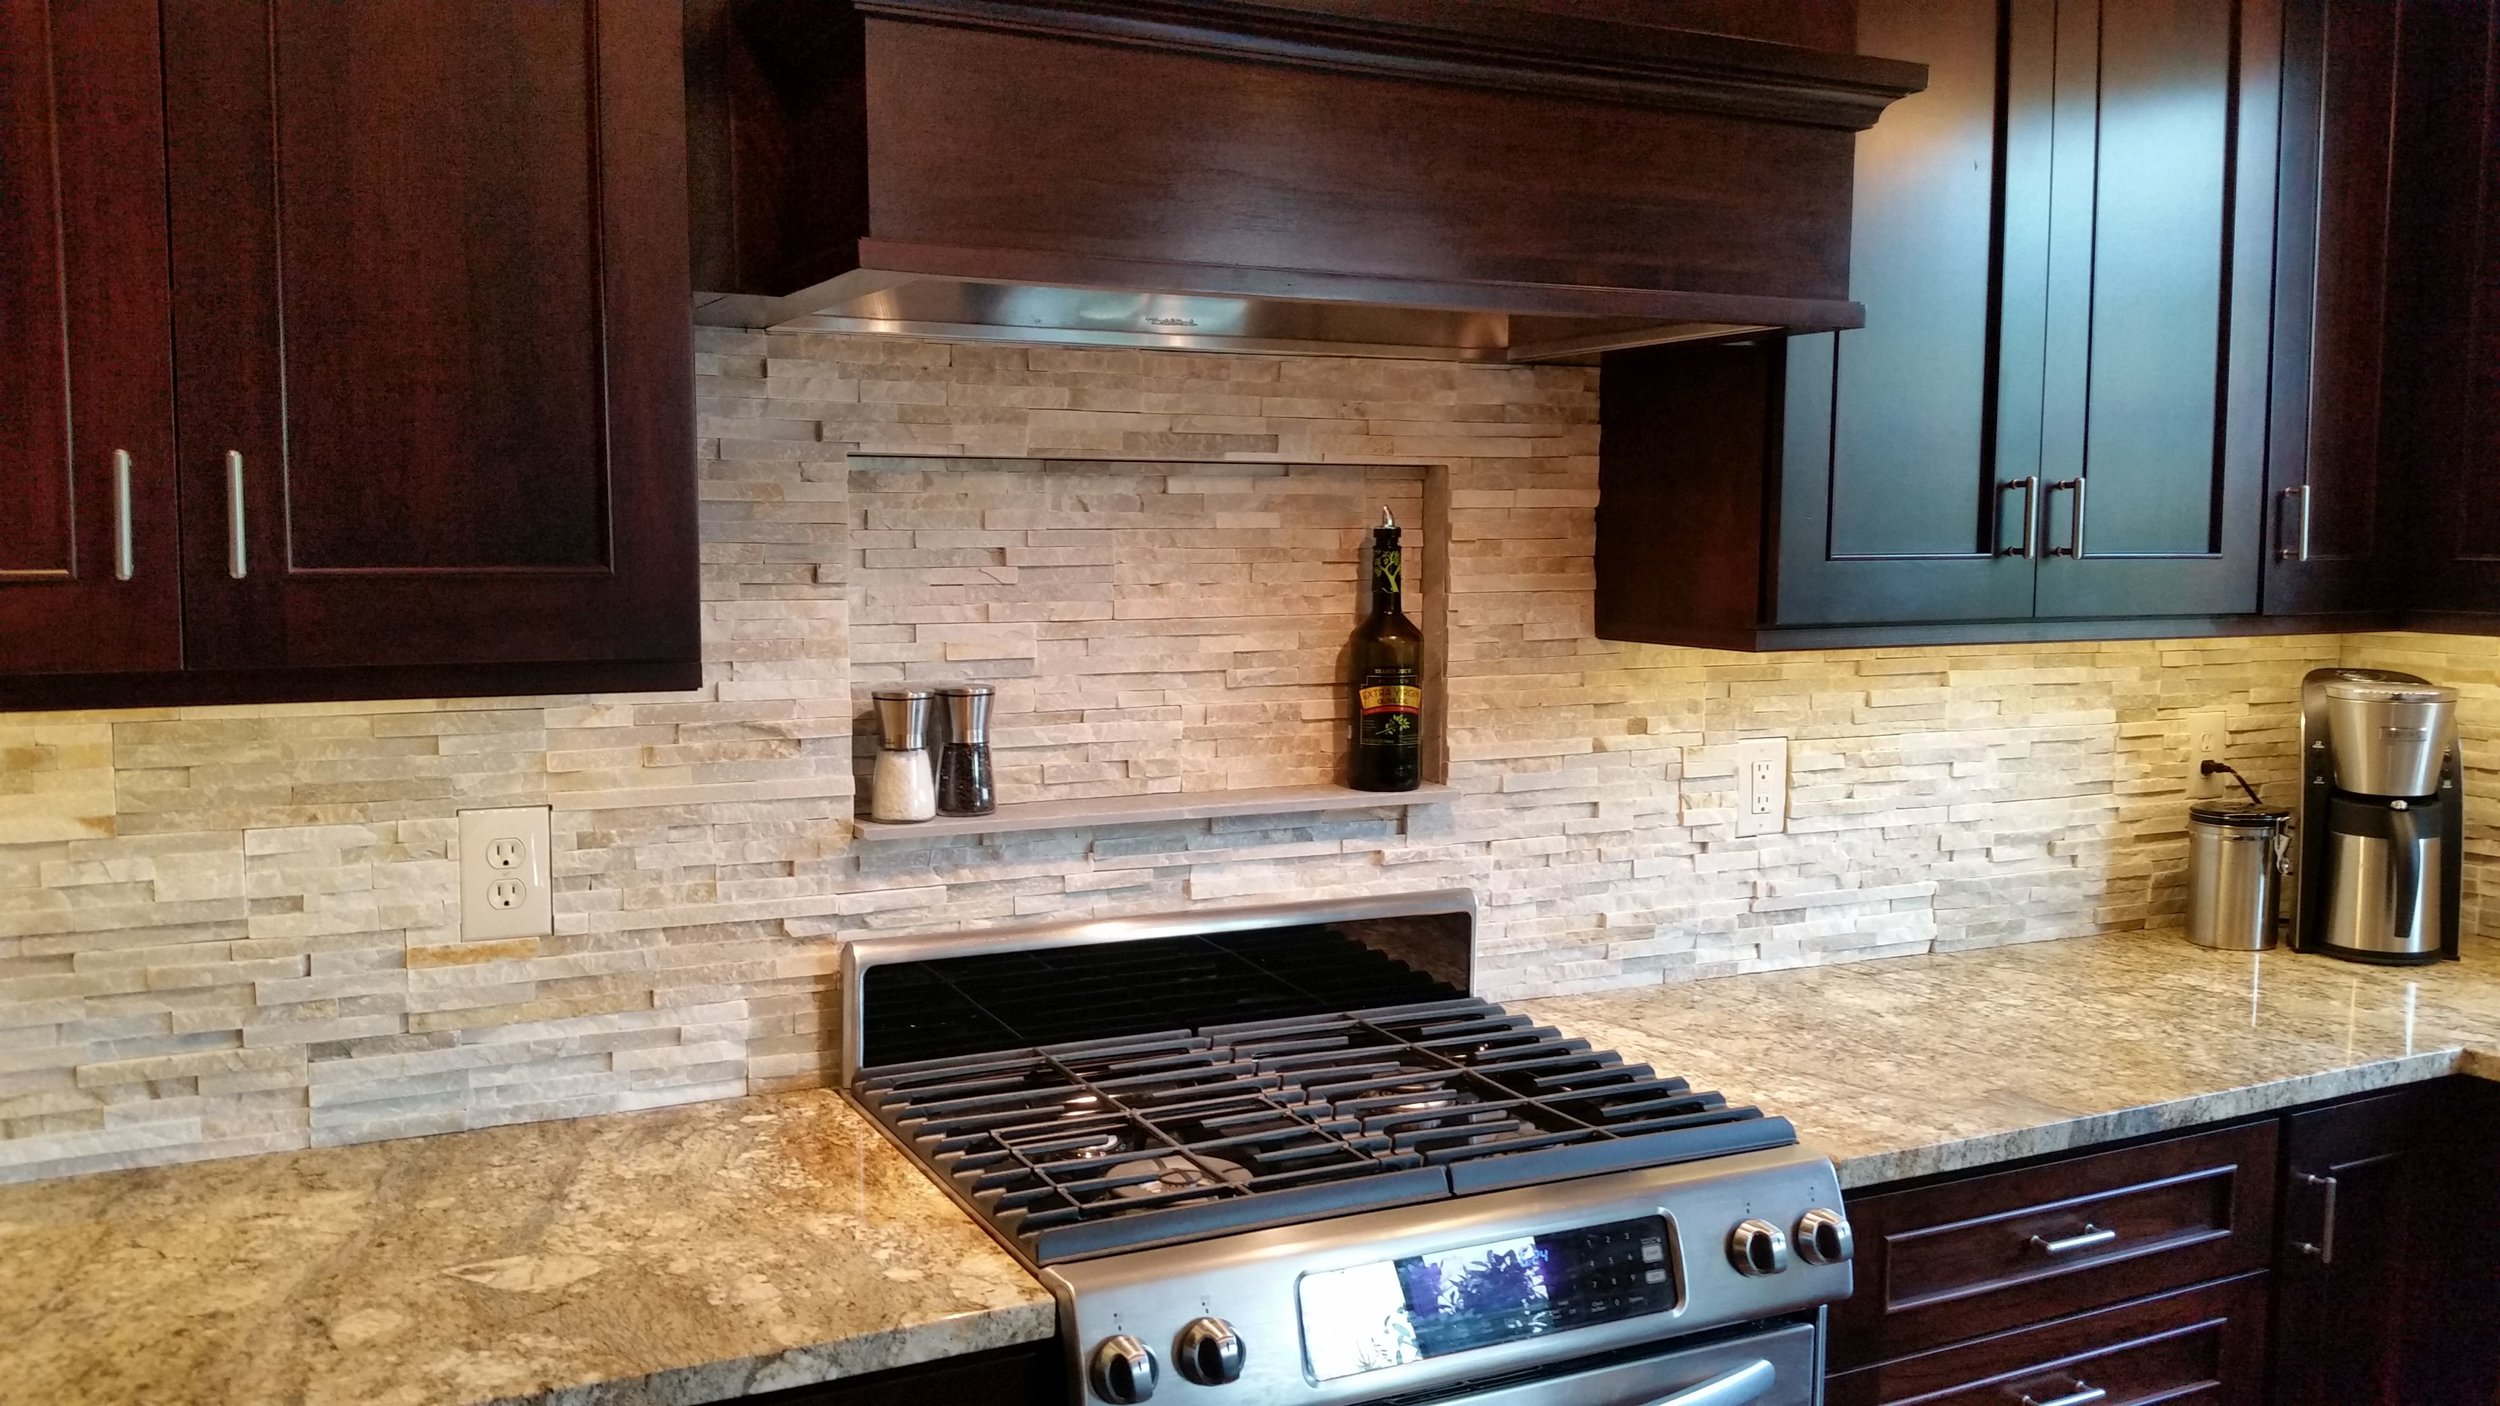 New kitchen remodel with new appliances, back splash, counter tops, cabinets, and more. Stove view.